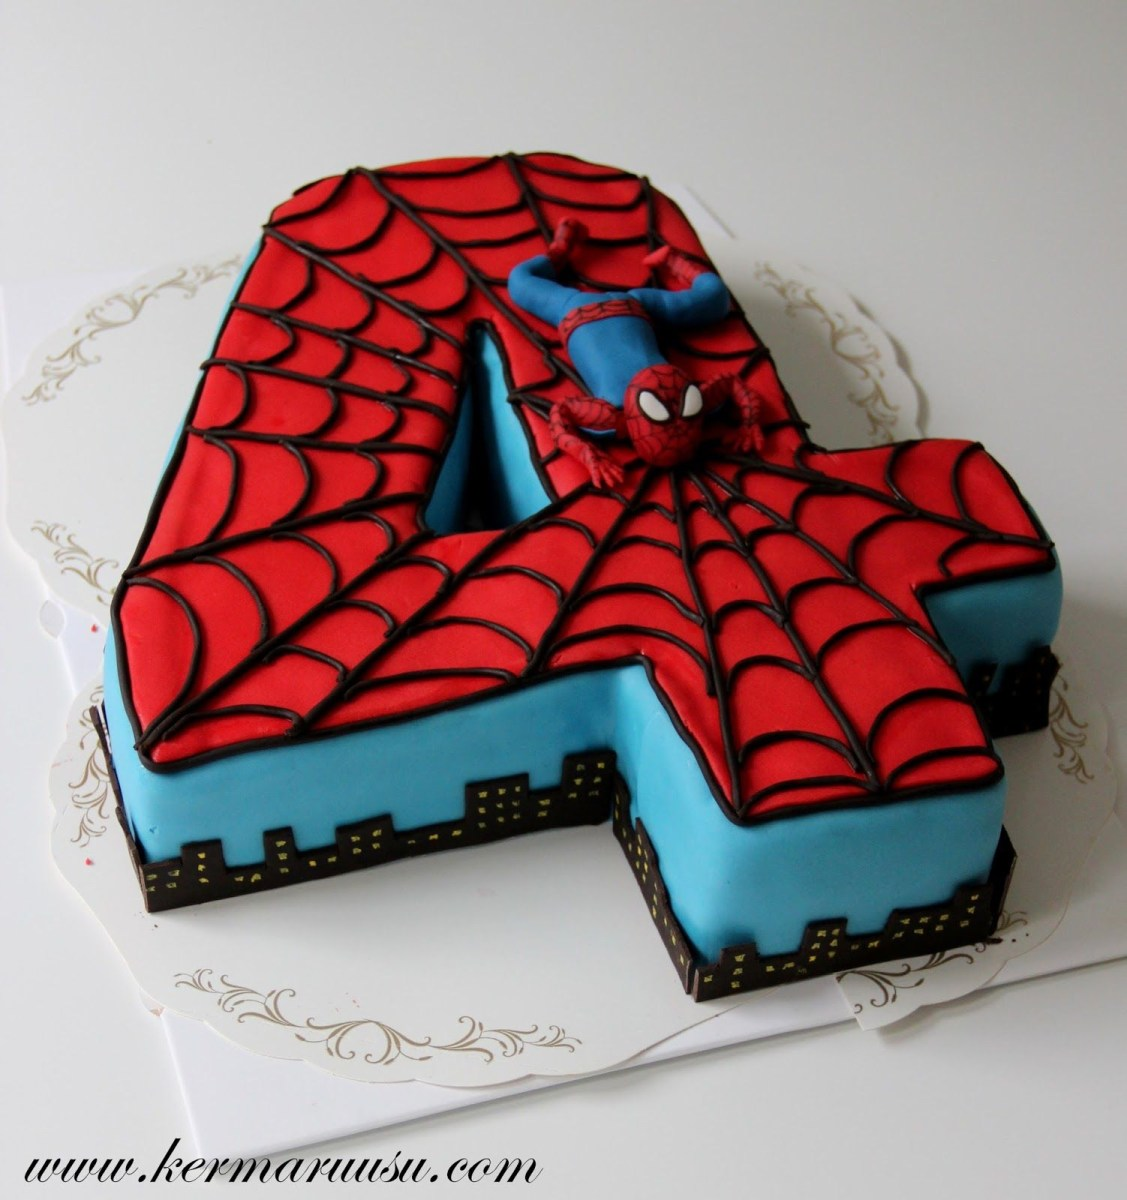 Spiderman Birthday Cakes Spiderman Cake Visit To Grab An Amazing Super Hero Shirt Now On